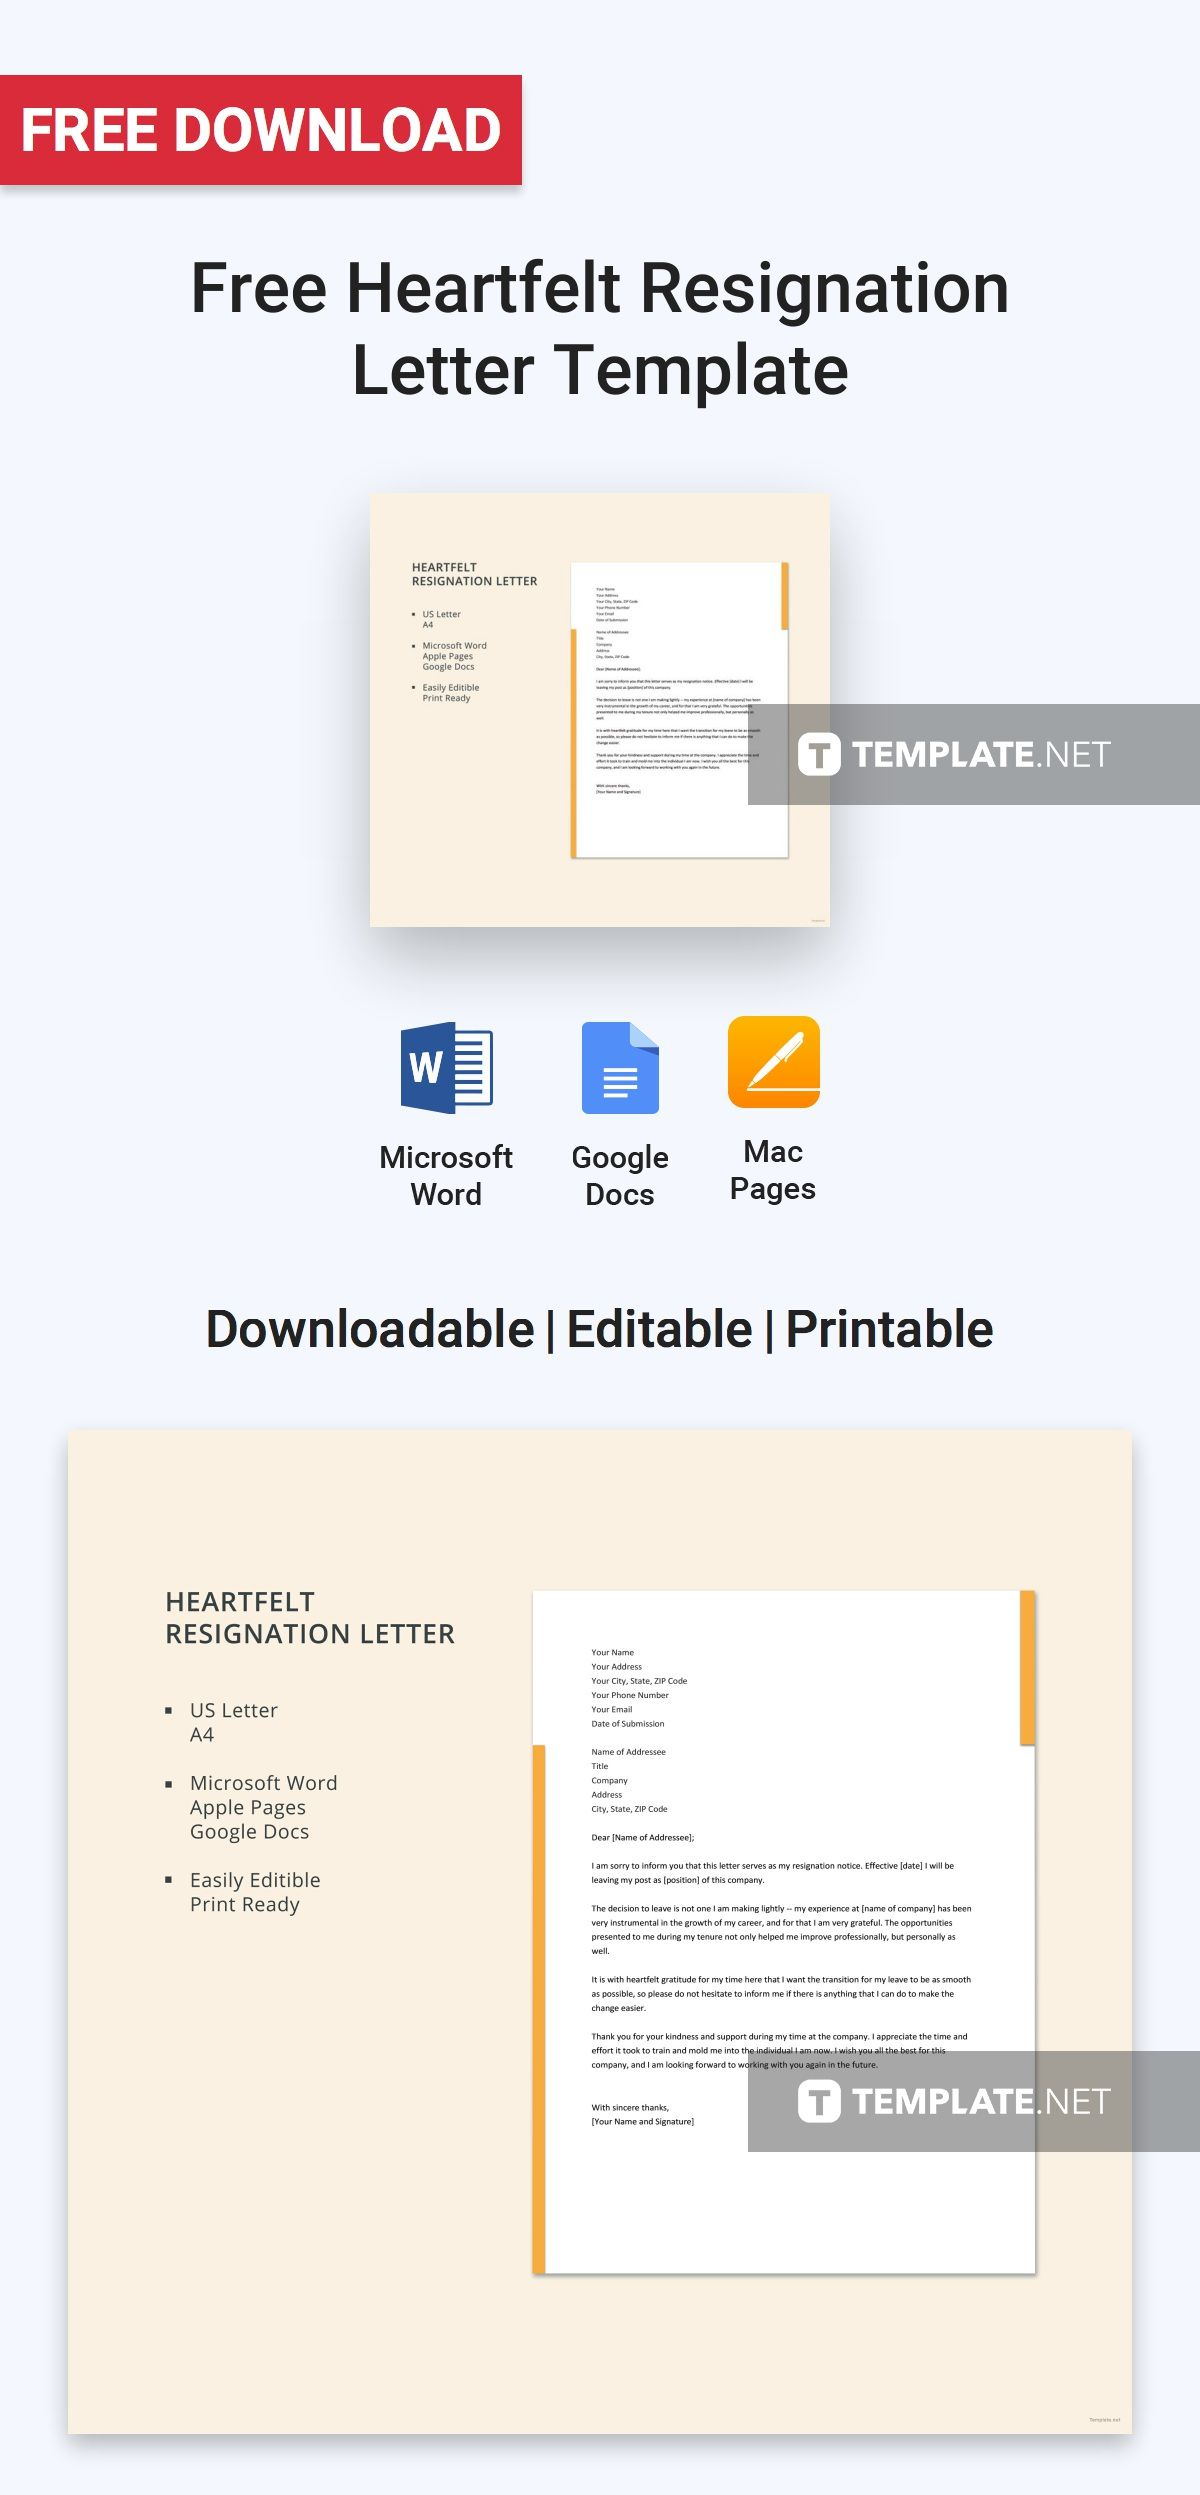 Free heartfelt resignation letter free letter templates download free heartfelt resignation letter template for personal business use professionally written free letter templates spiritdancerdesigns Gallery